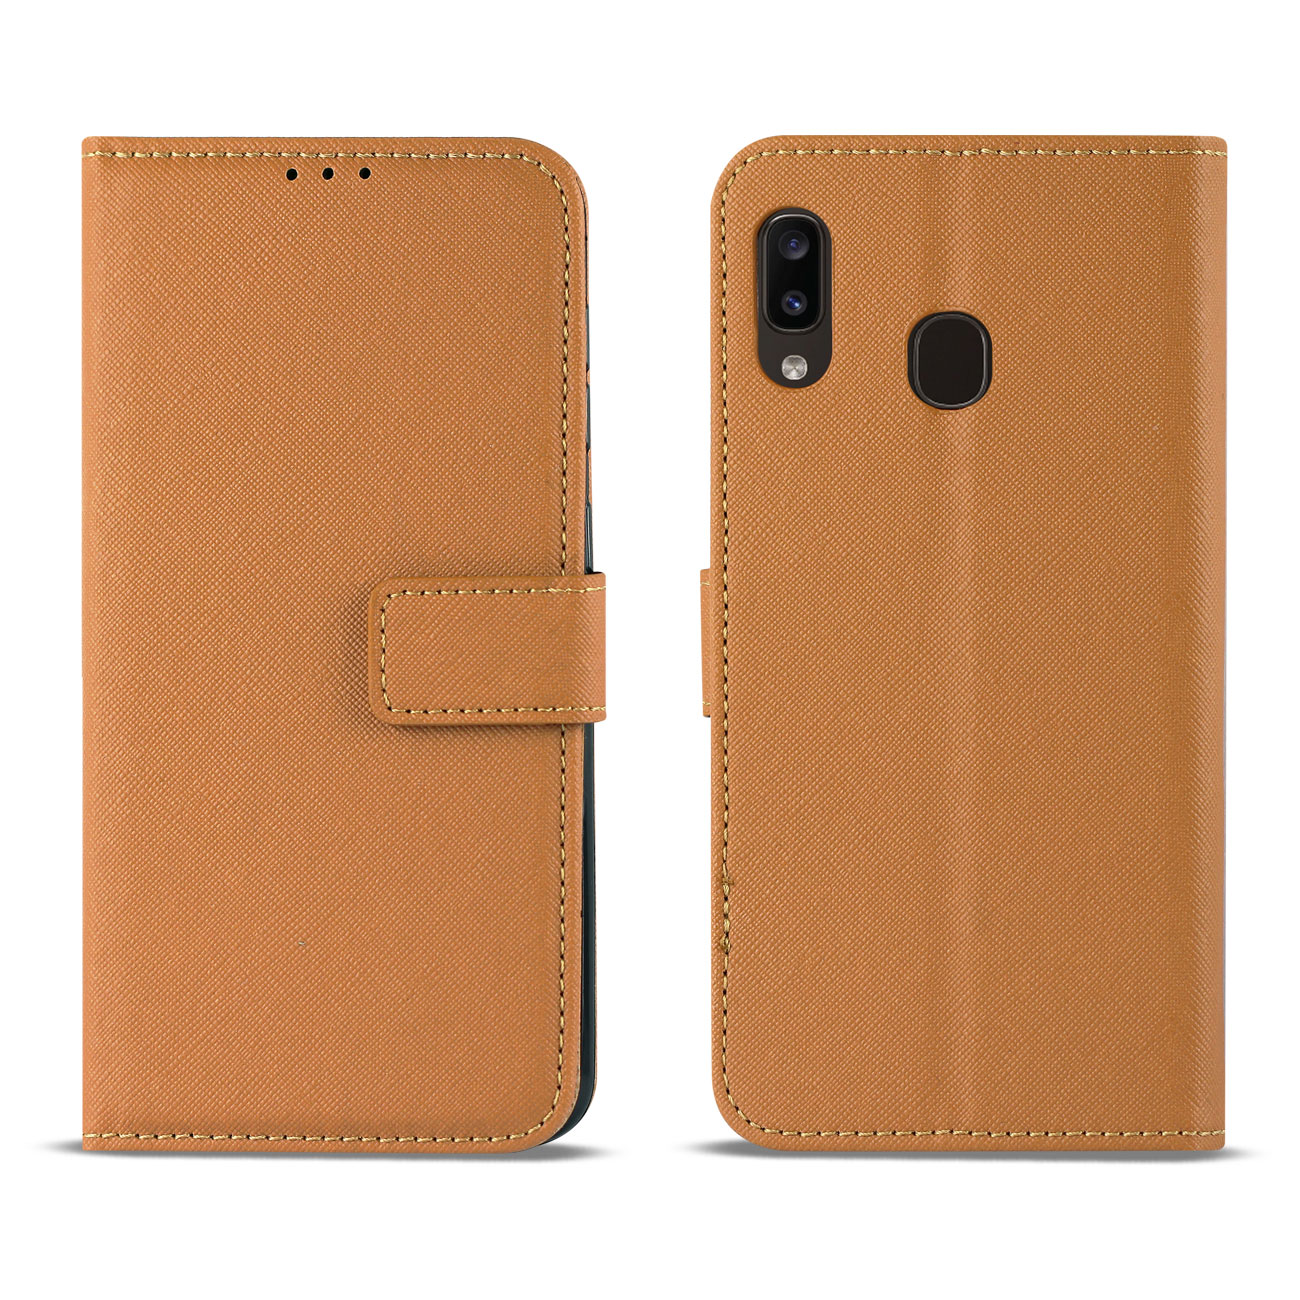 SAMSUNG GALAXY A10E 3-In-1 Wallet Case In BROWN